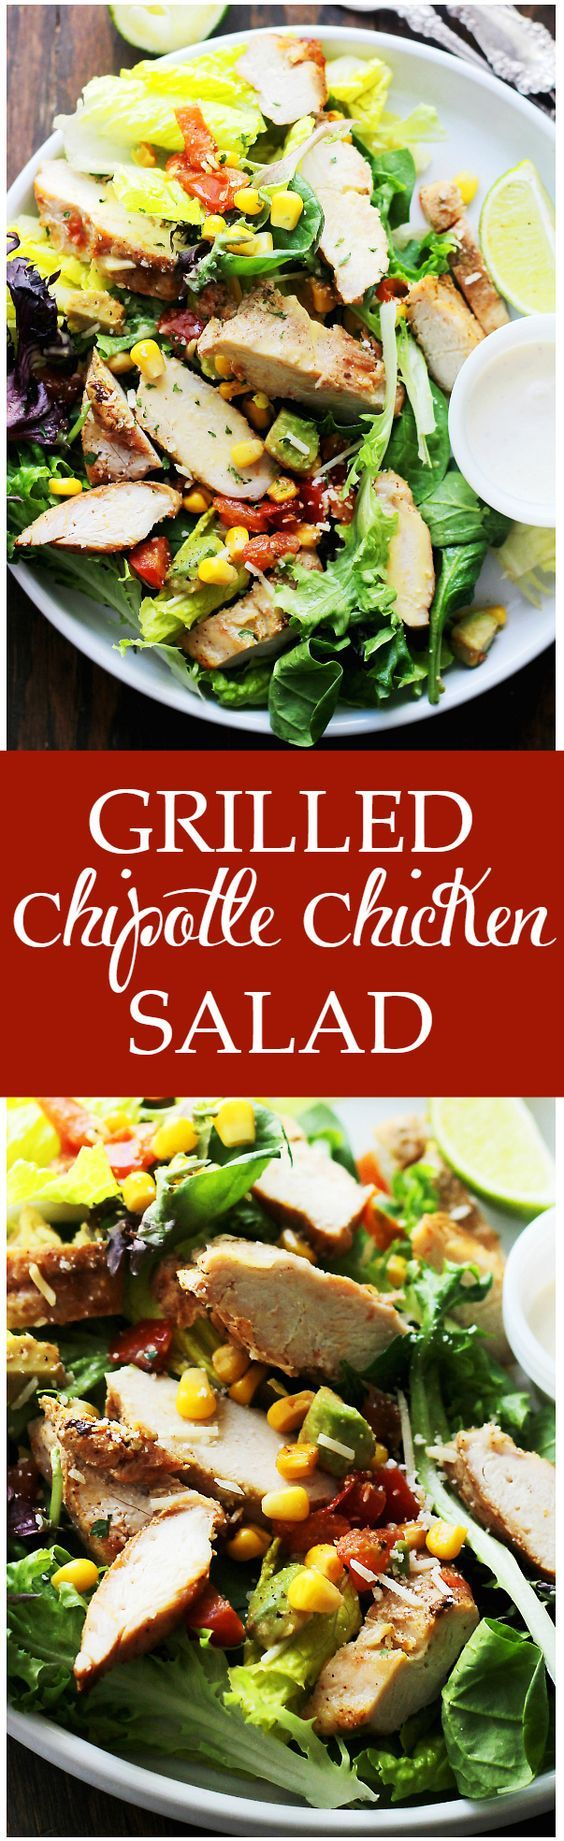 Grilled Chipotle Chicken Salad - Oven grilled chicken seasoned with chipotle powder and tossed with all your favorite southwestern fixings. An incredibly delicious salad with a bite!